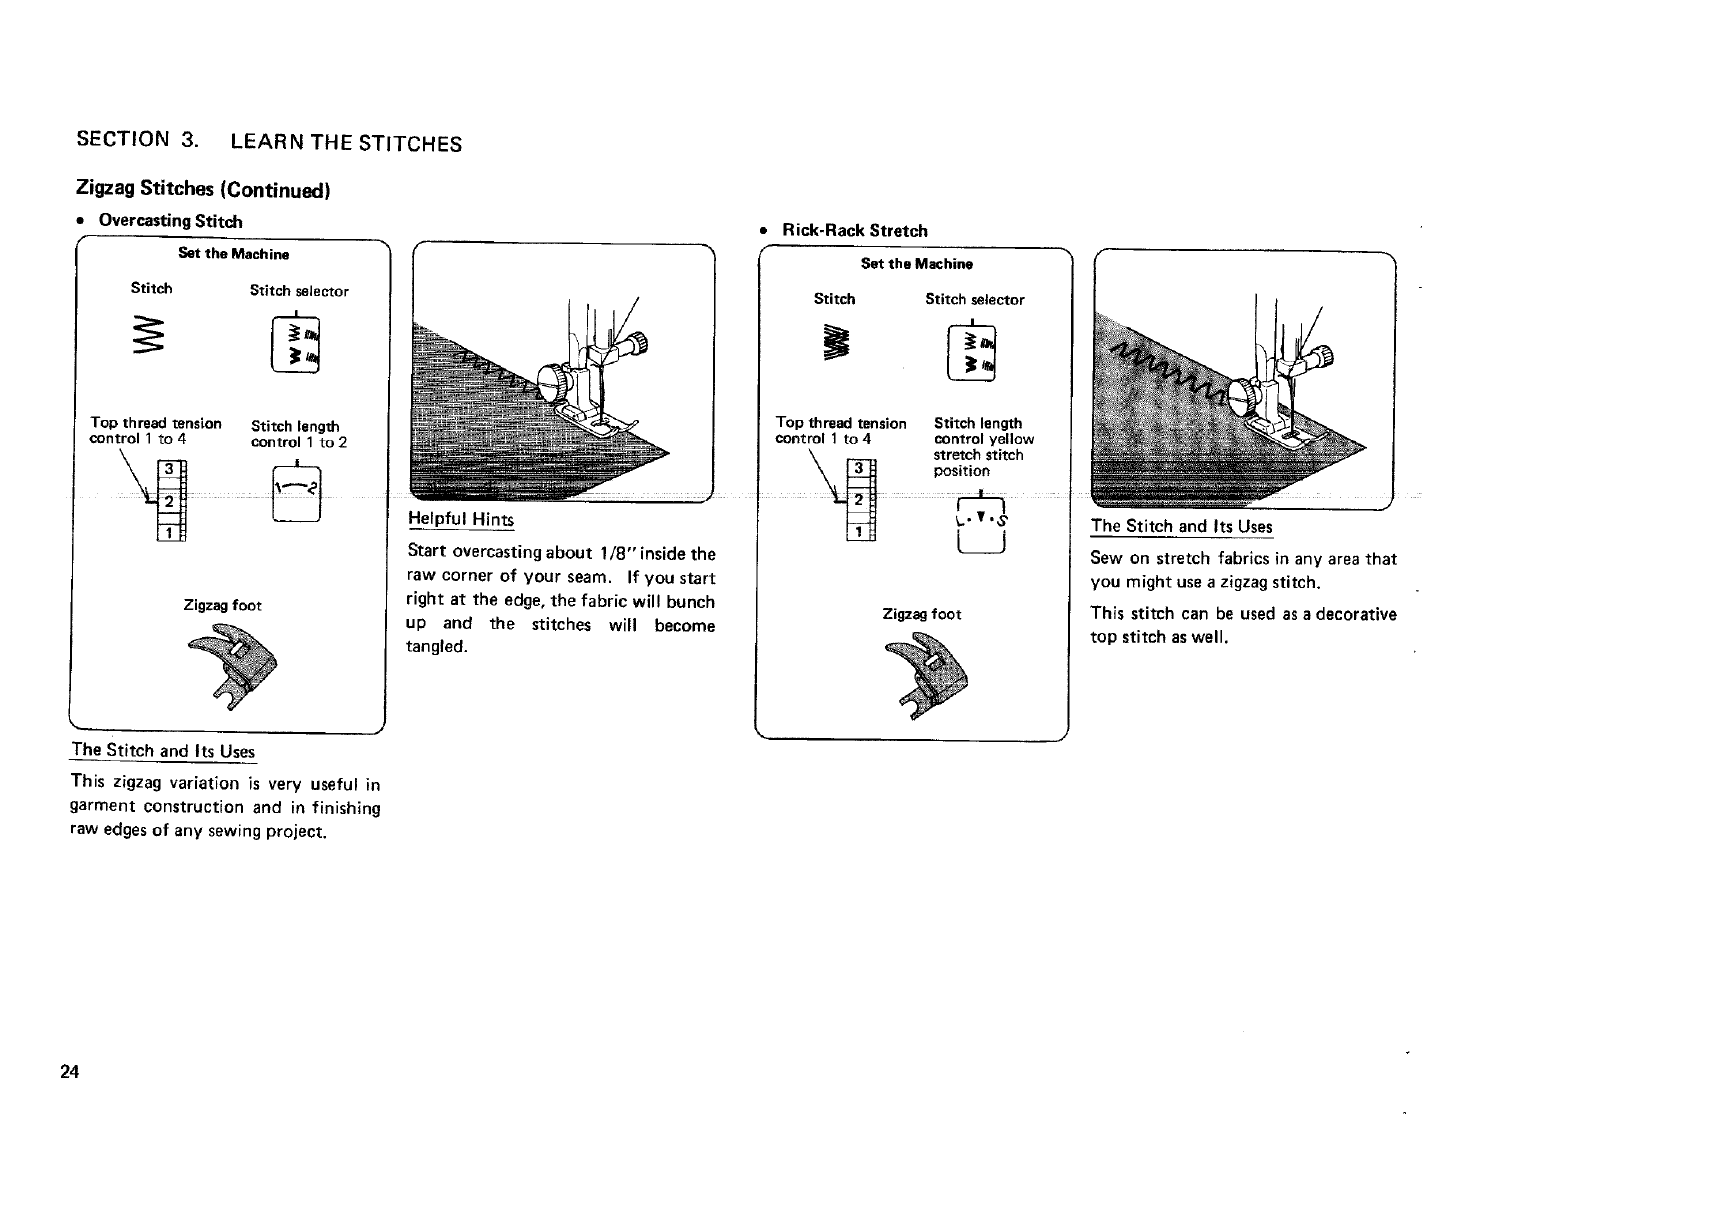 Page 28 of Sears Sewing Machine 12781 User Guide